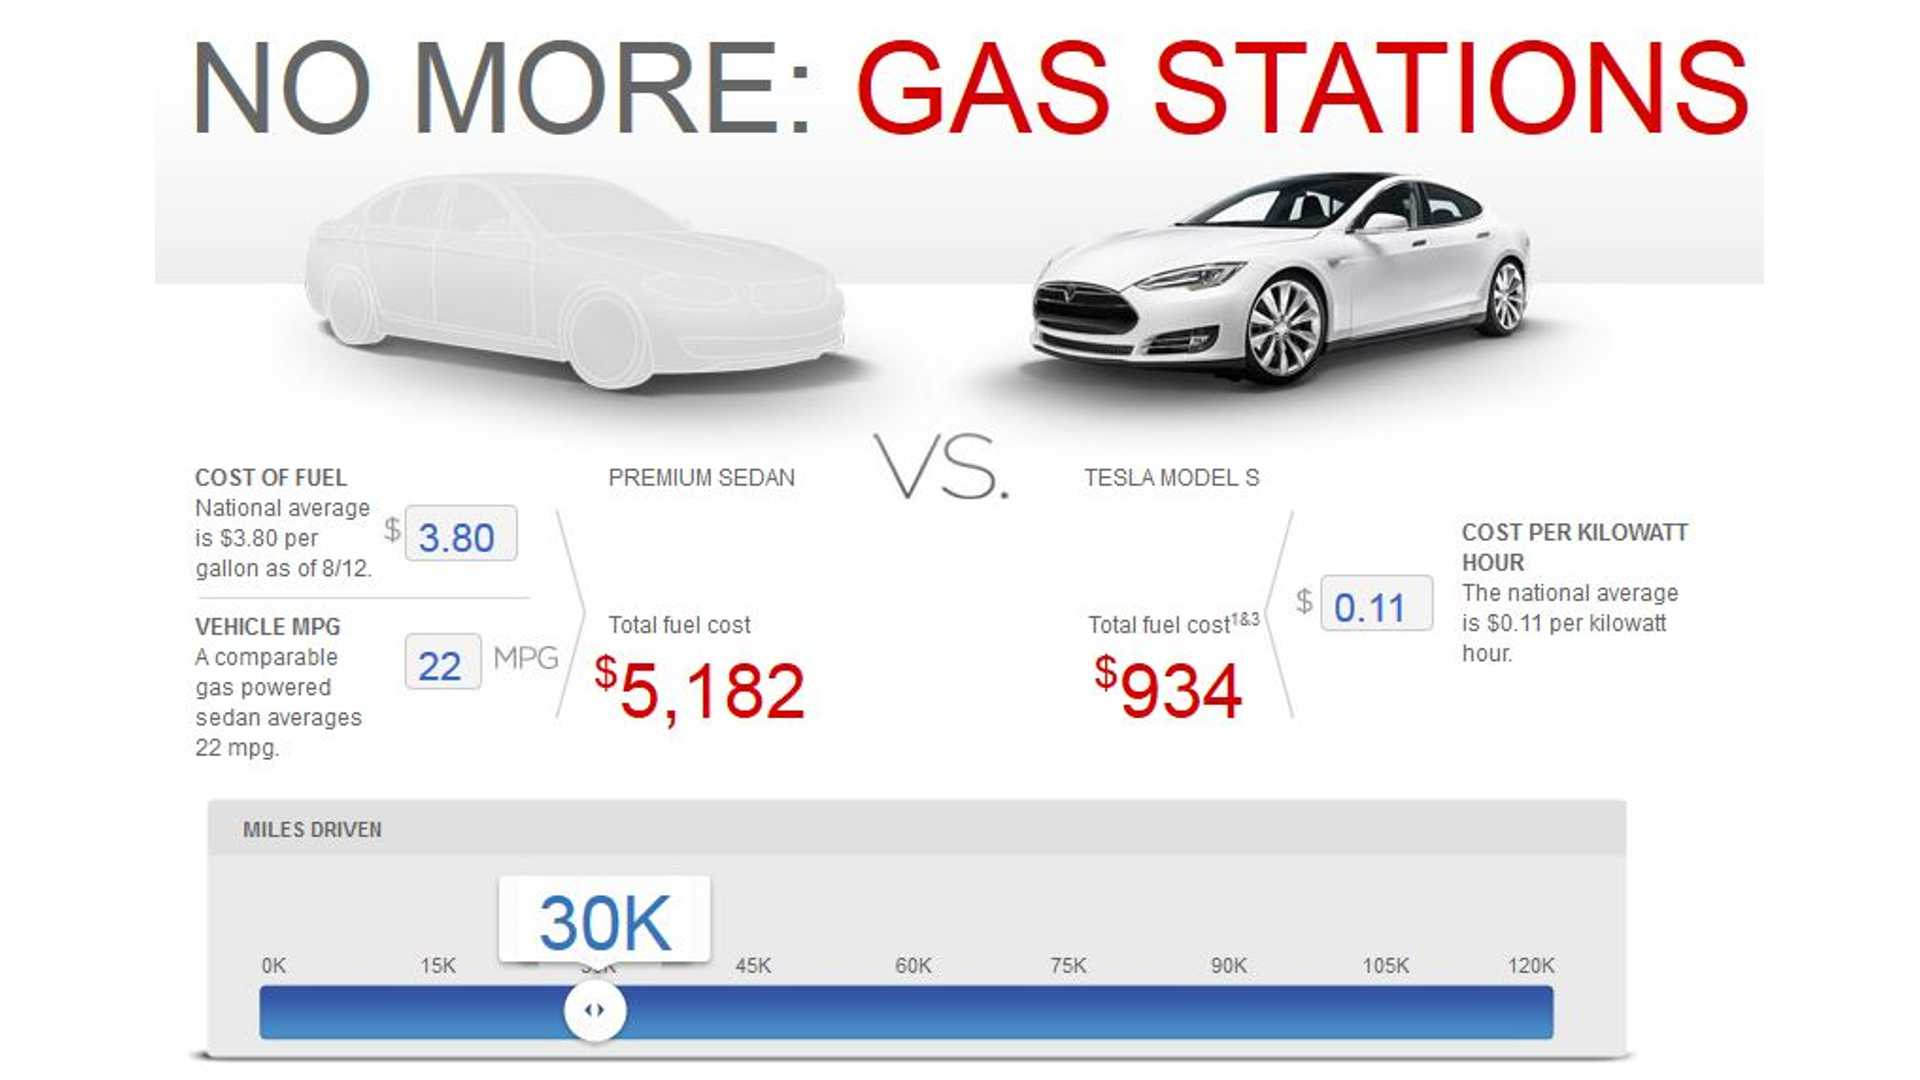 Of Course It S Er To Fuel A Tesla Model Compared Gas Premium Sedan But By How Much